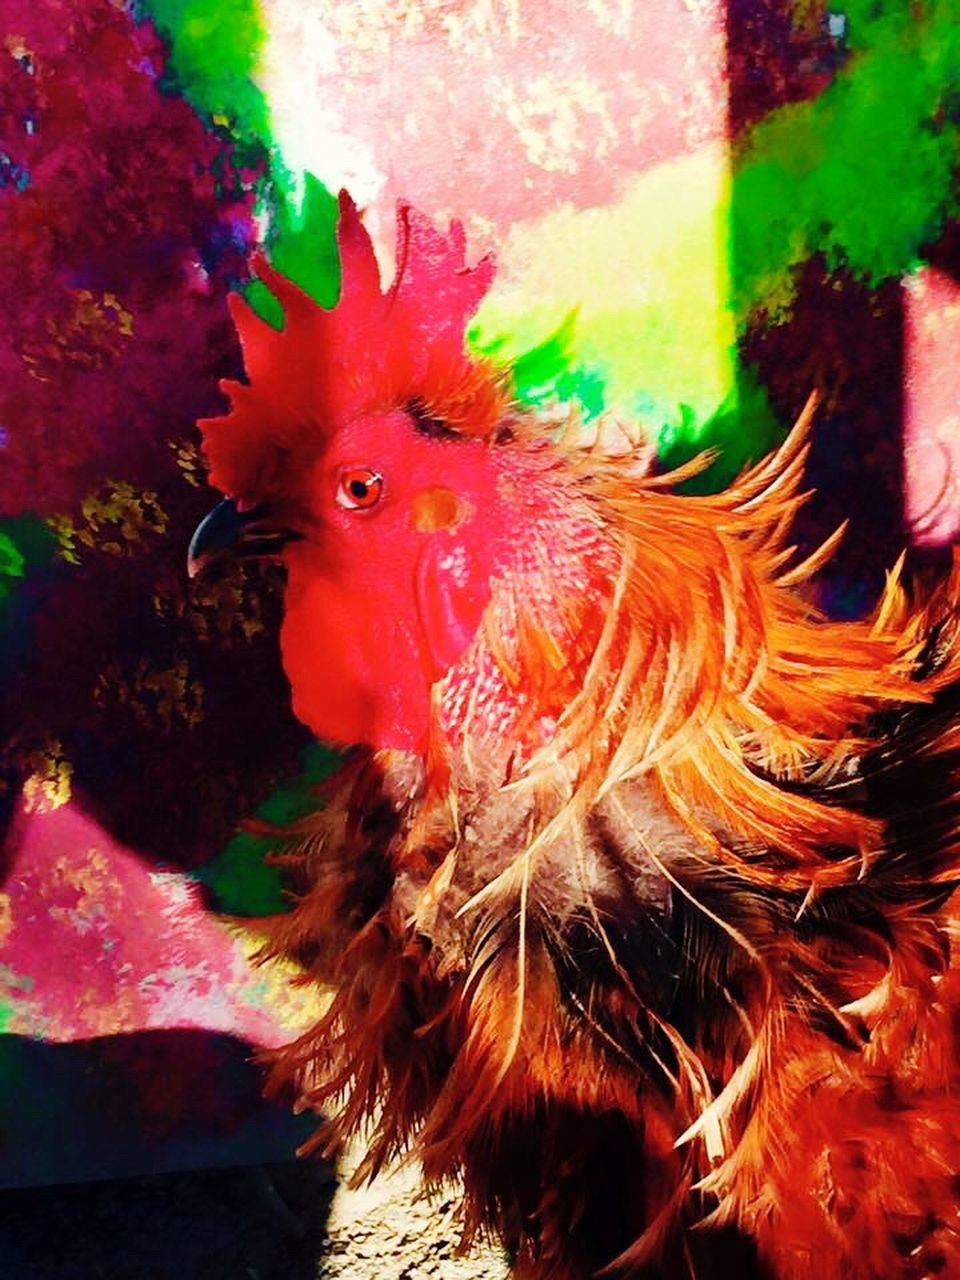 animal themes, one animal, chicken - bird, domestic animals, livestock, no people, rooster, bird, close-up, outdoors, underwater, portrait, nature, day, undersea